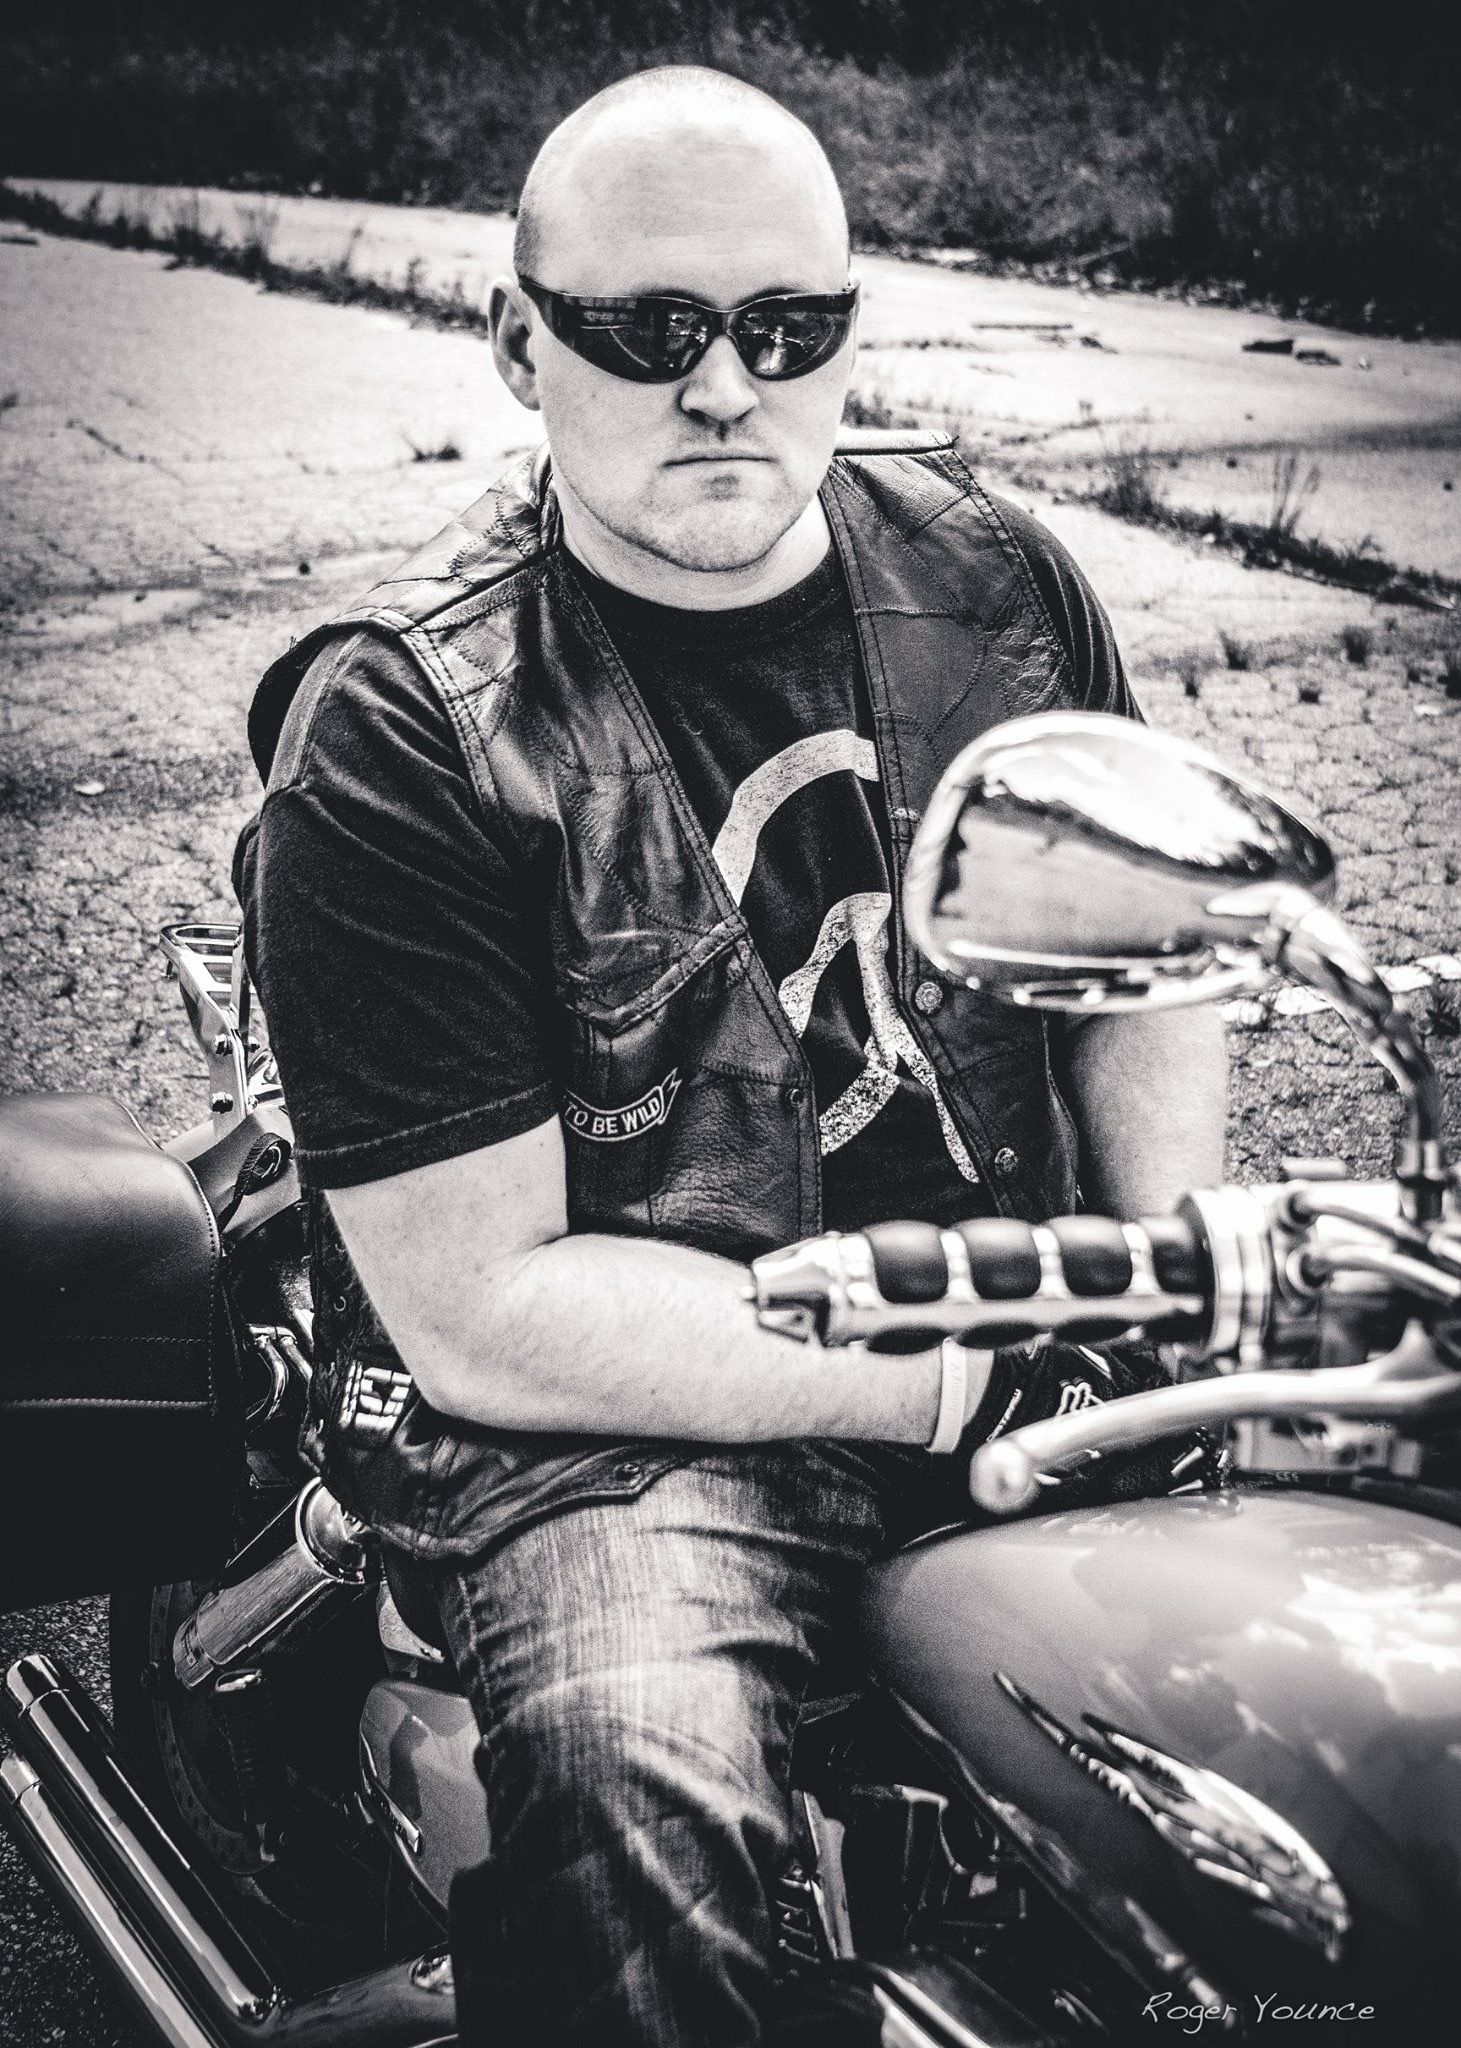 biker-photography-portrait-jamestown-greensboro-highpoint-triad-northcarolina-photography-photographer-roger-younce-photography-Harley